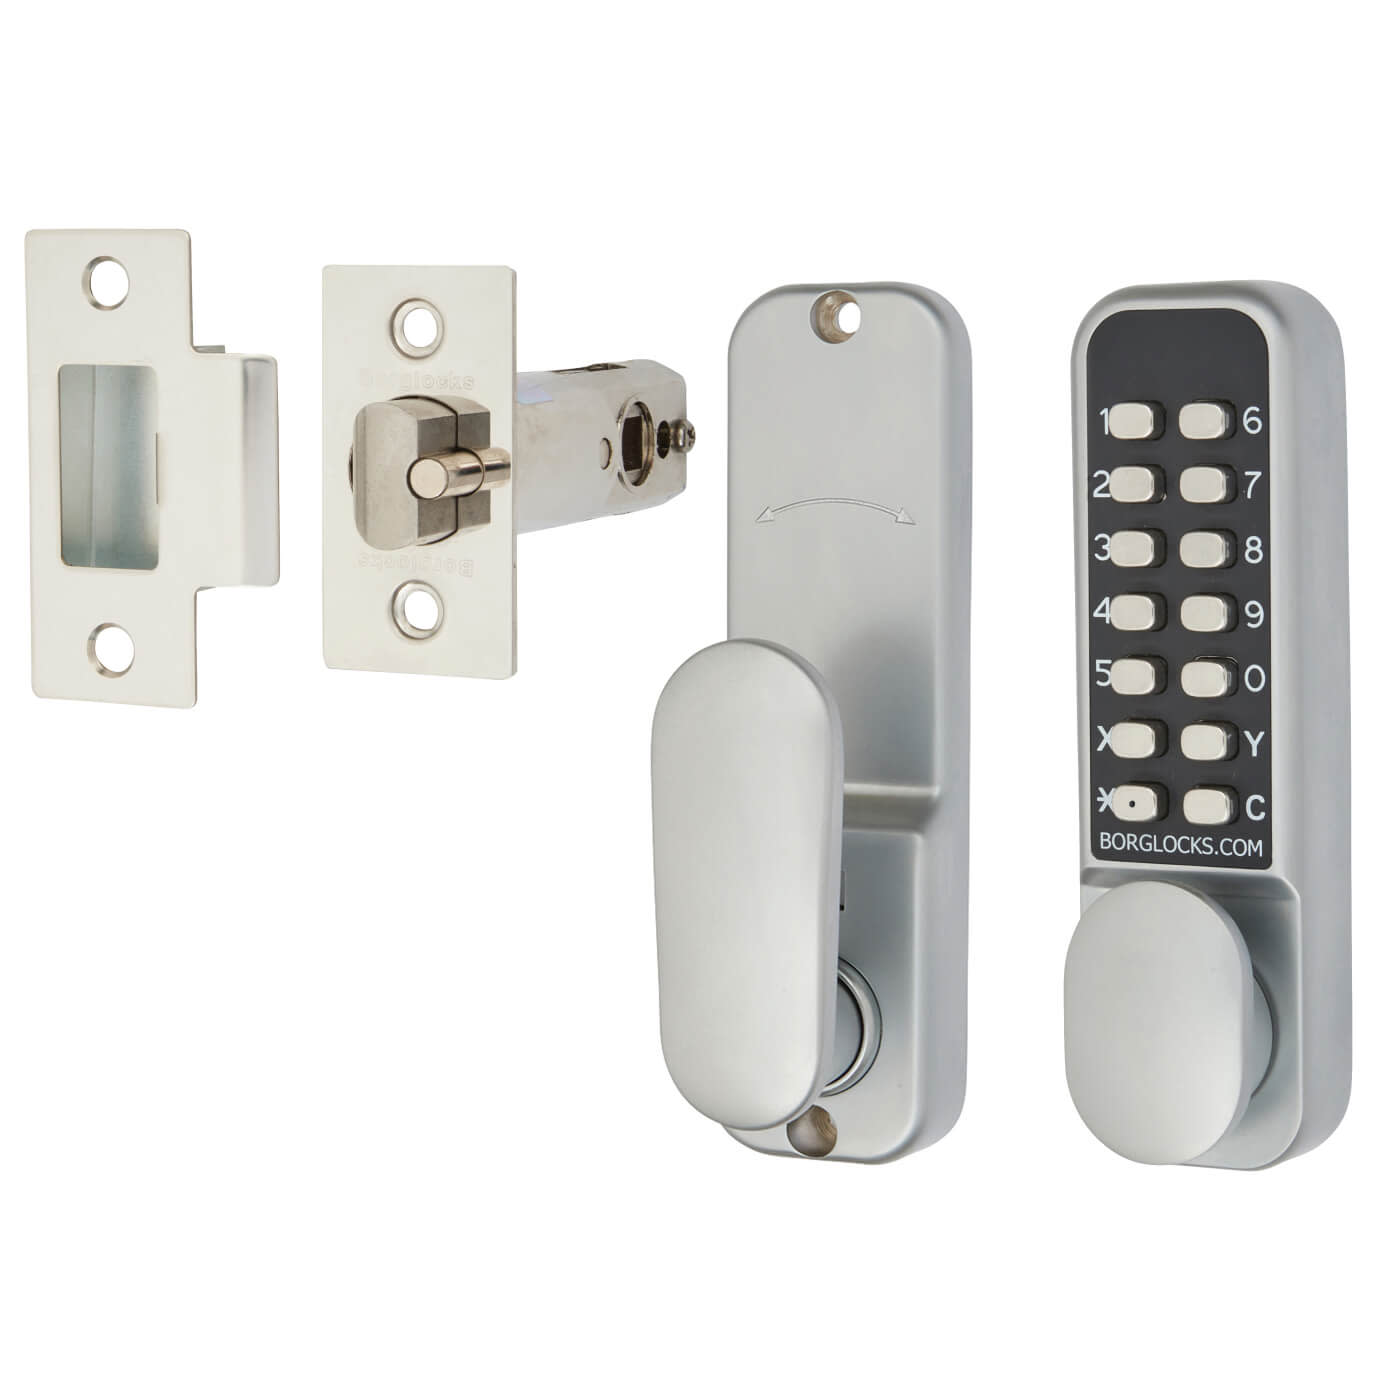 Borg BL2201 Easicode Pro Code Operated Lock with Thumbturn - Grey)